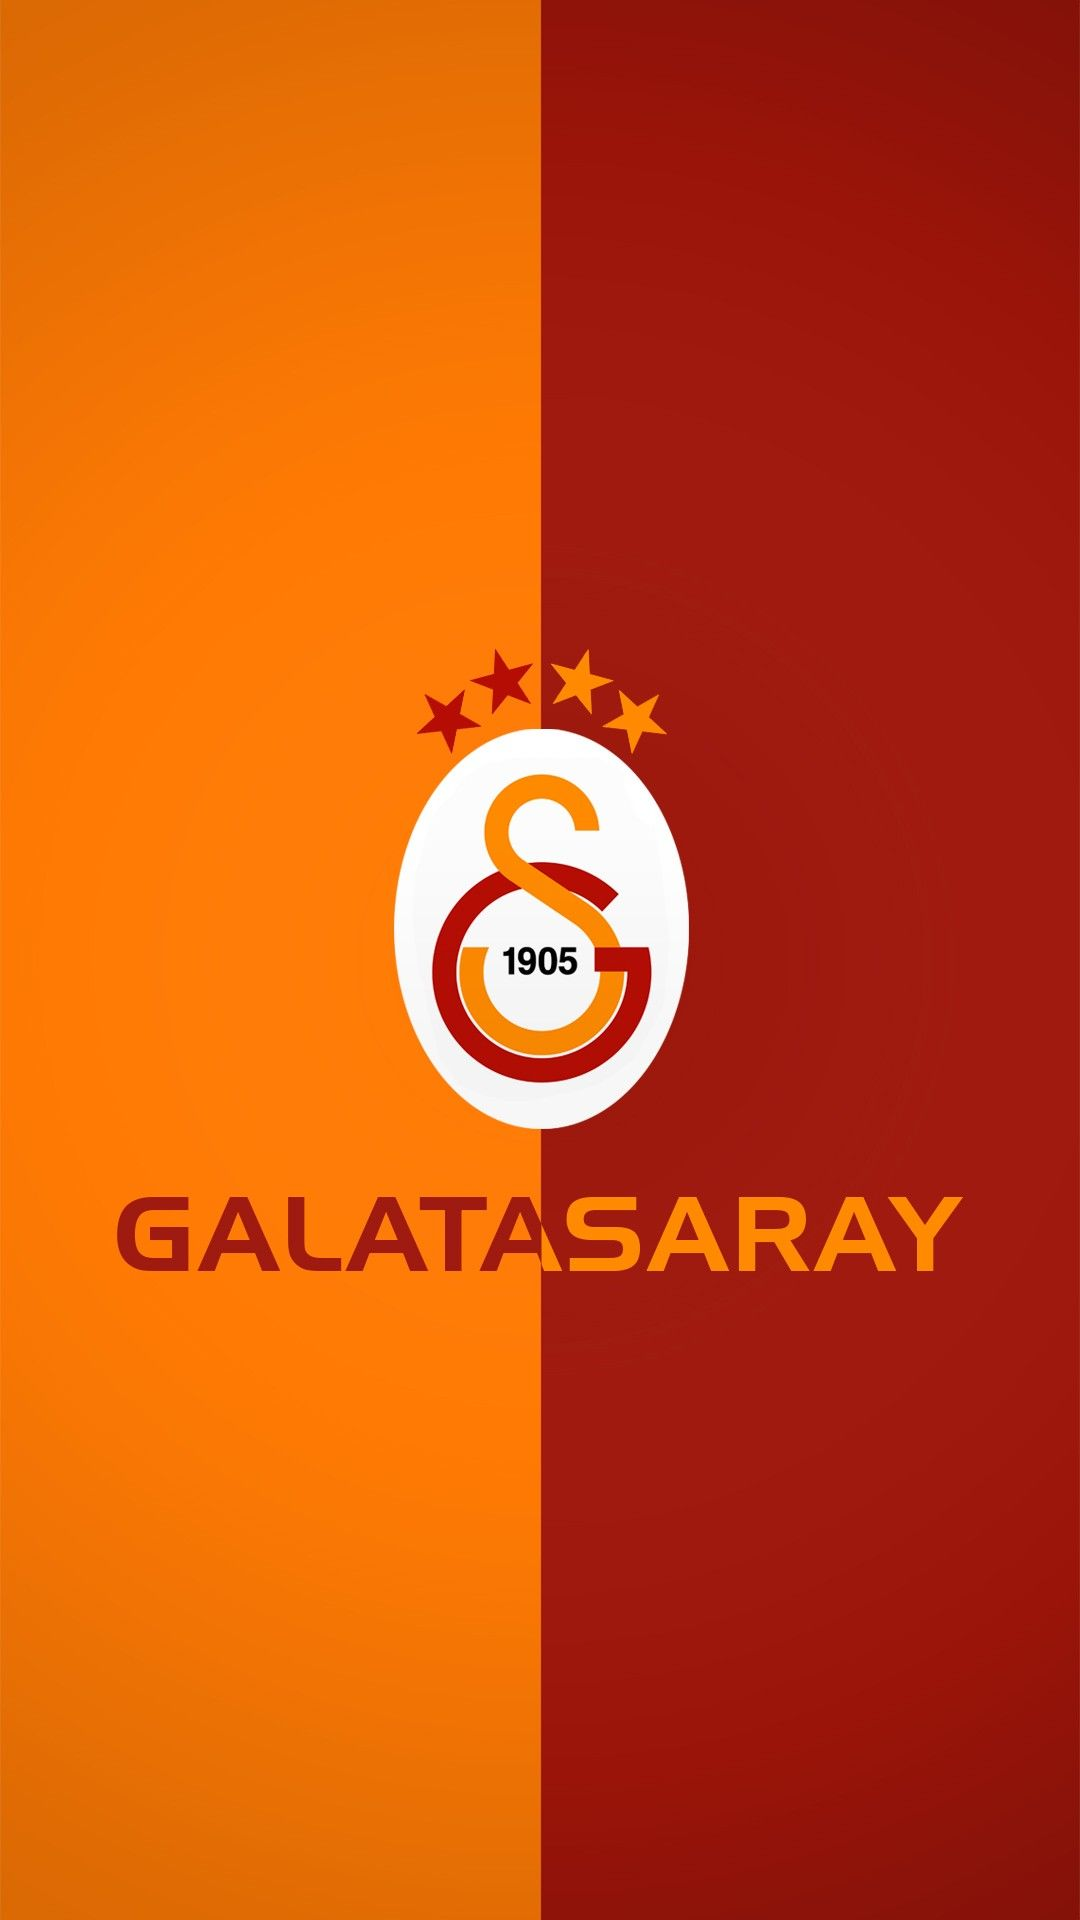 Galatasaray S.K., Soccer Wallpapers HD / Desktop and Mobile | Cimbom Galatasaray | Pinterest